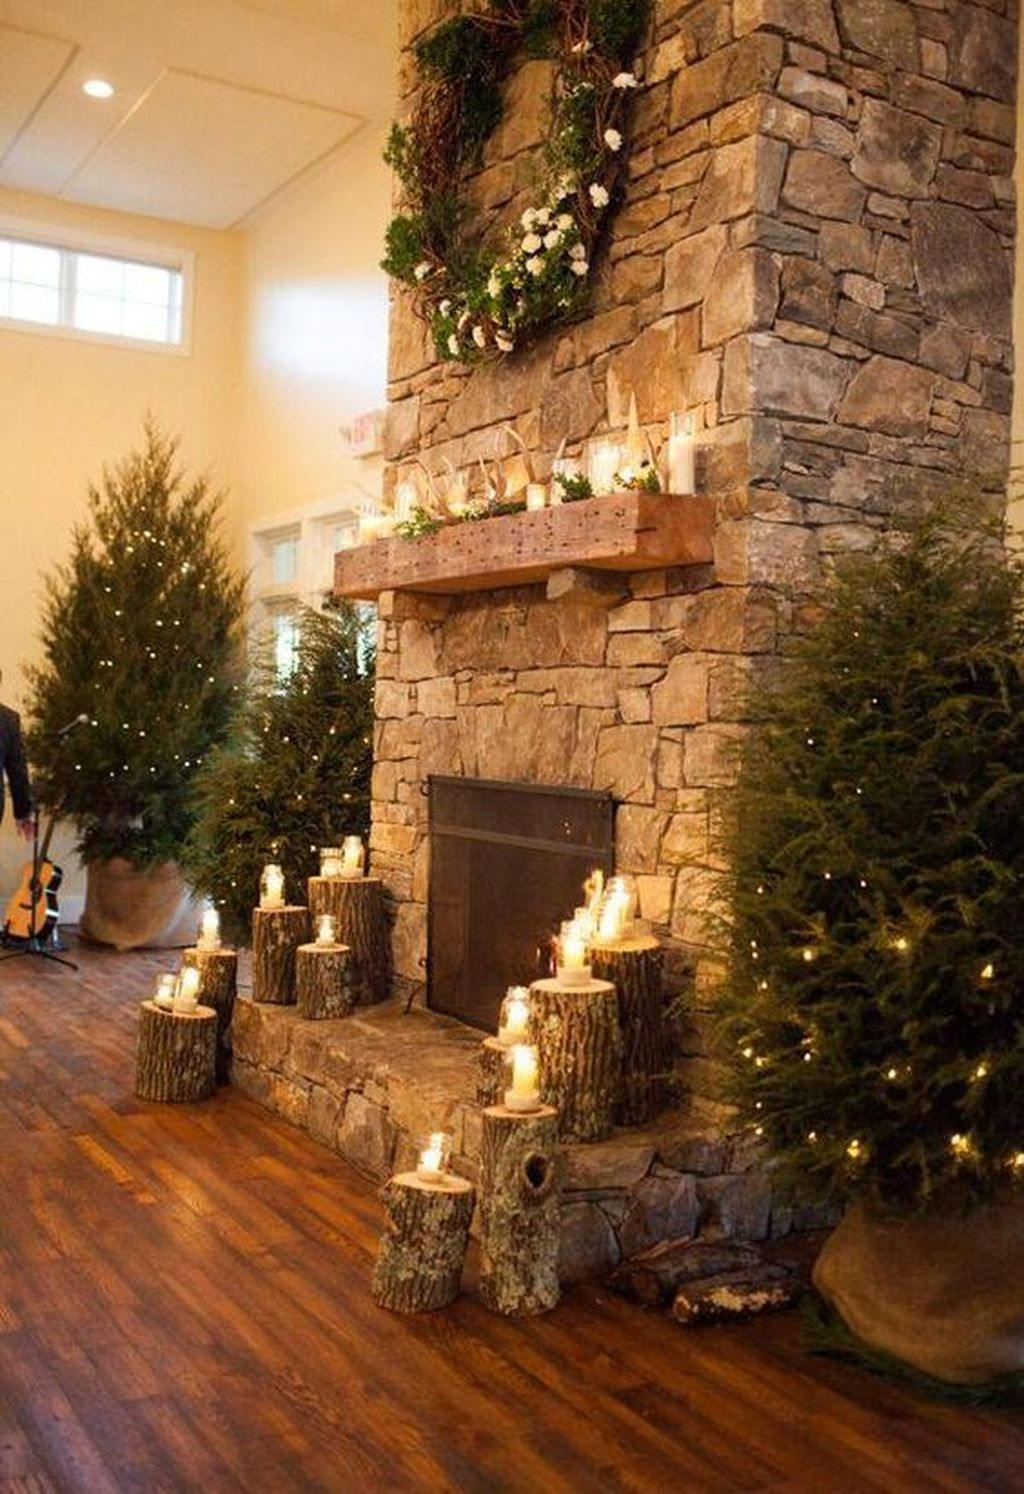 The Best Christmas Fireplace Decoration For Any Home Model 47